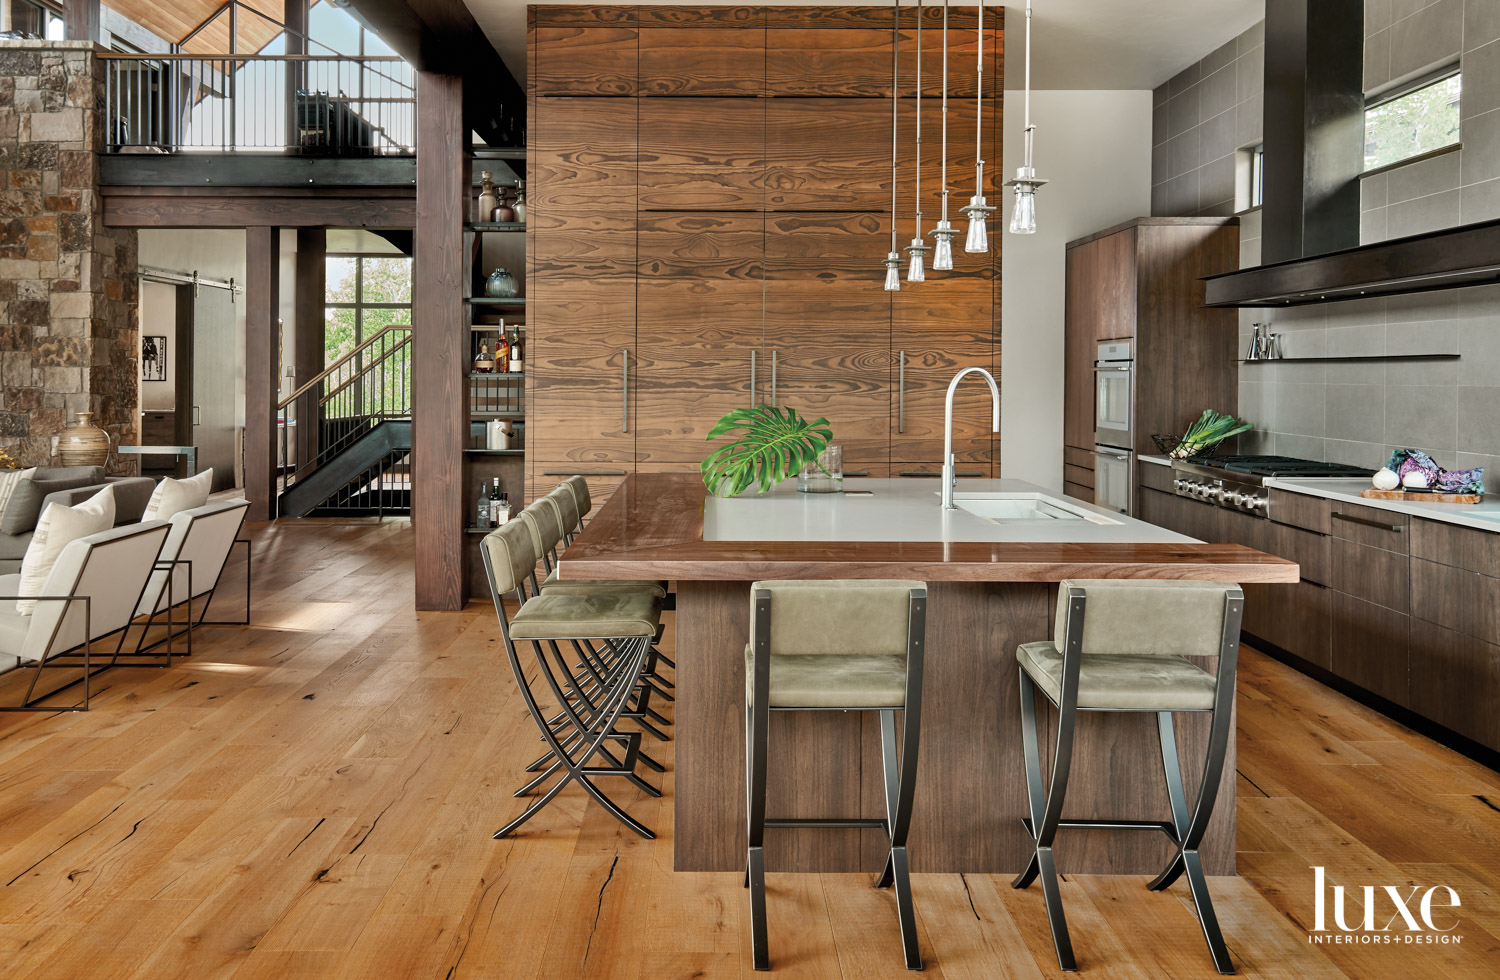 The kitchen features wood with...